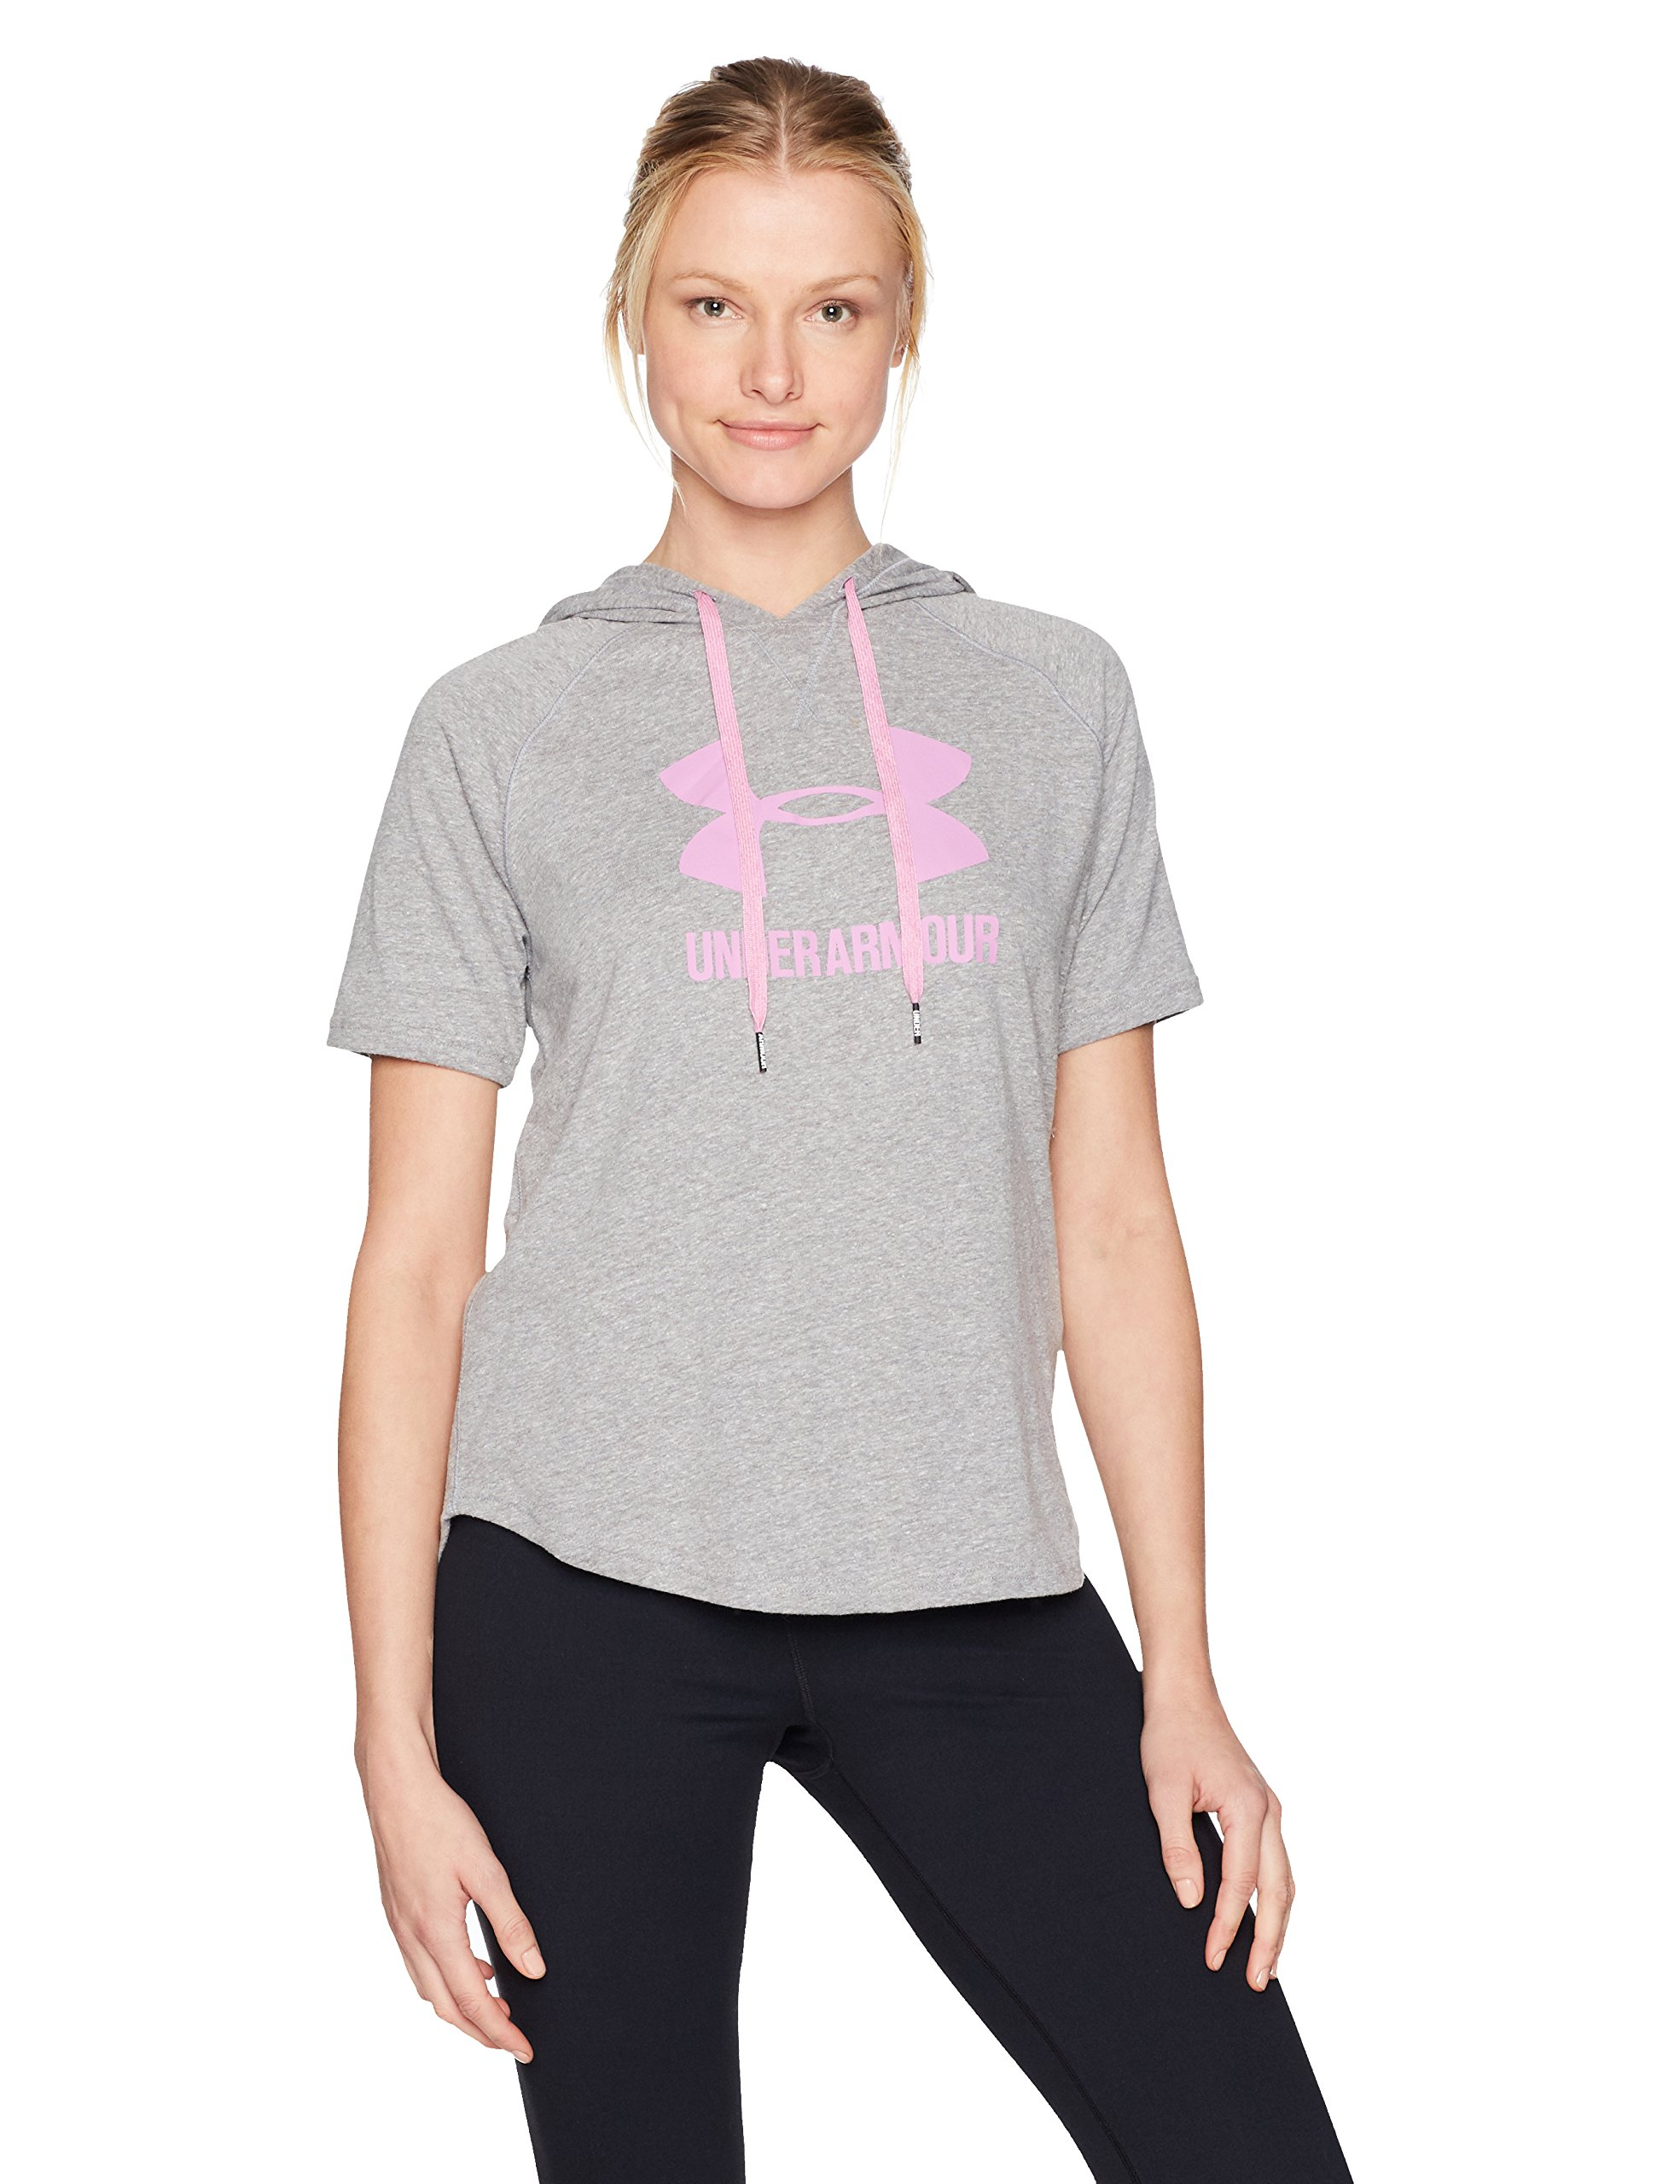 Under Armour Women's Sportstyle Short Sleeve Hoodie, Charcoal (019)/Icelandic Rose, Small